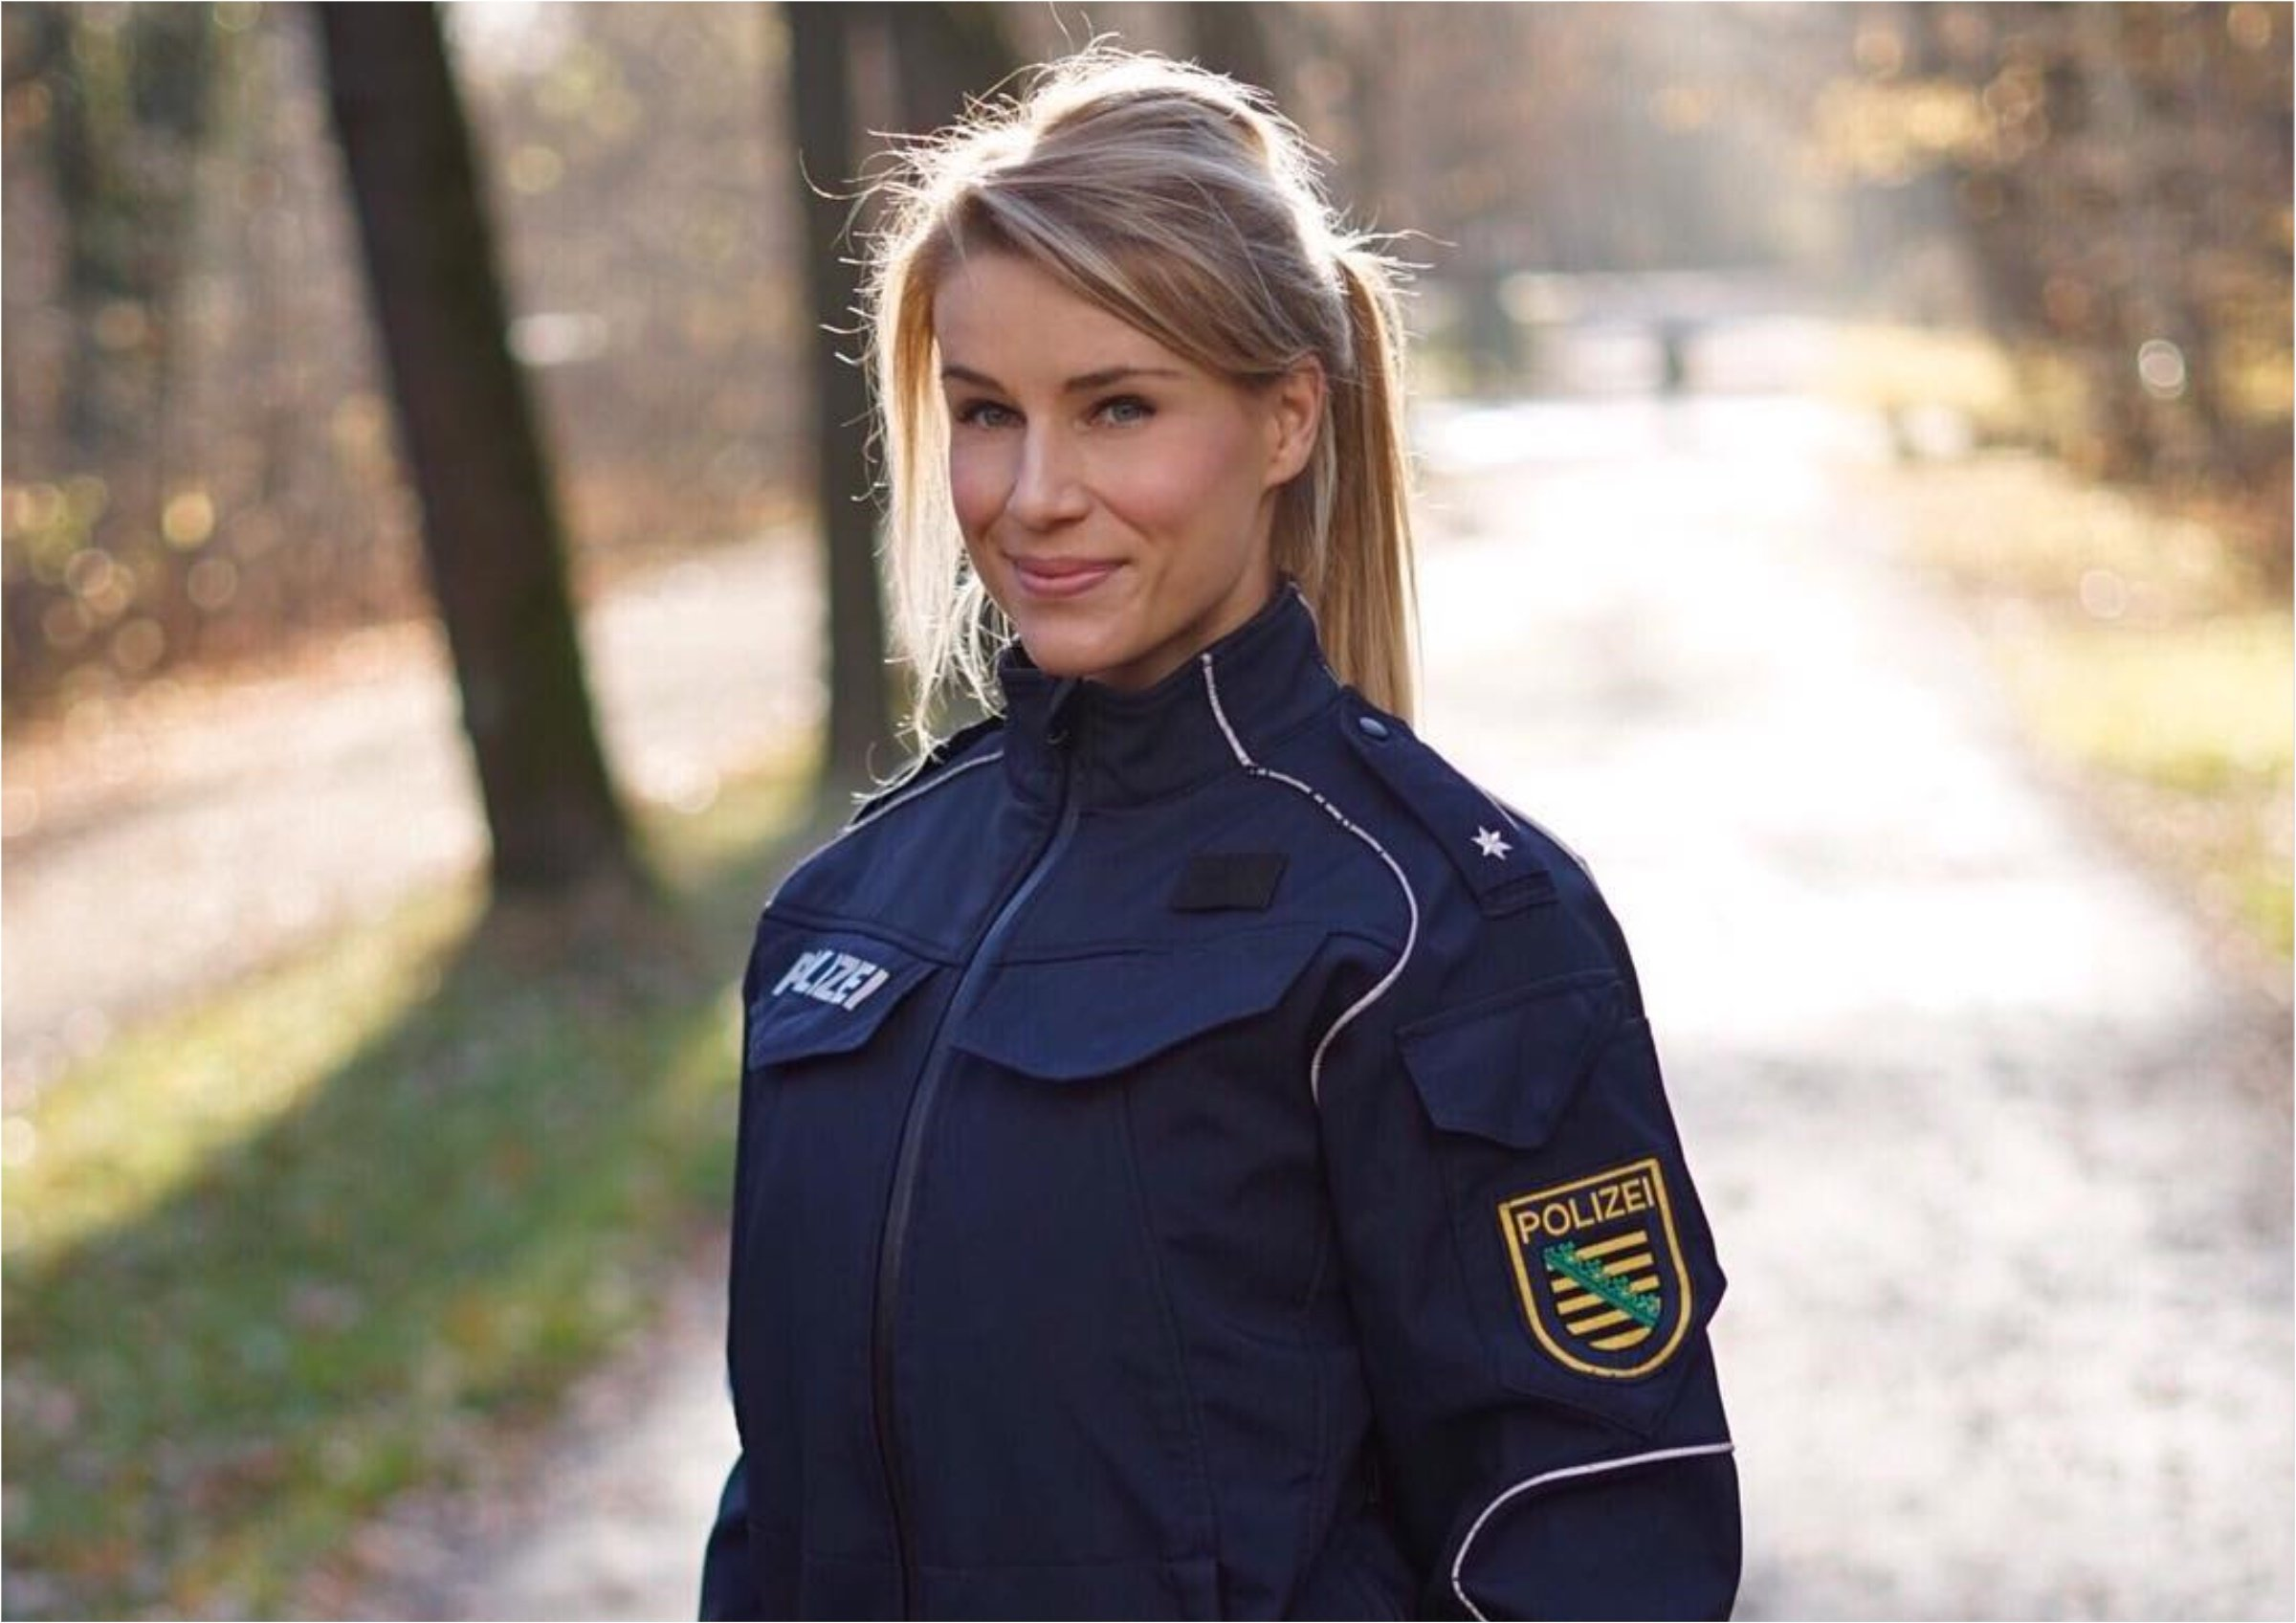 Germany Cop Lands In Trouble After Her Glamorous Pictures Go Viral